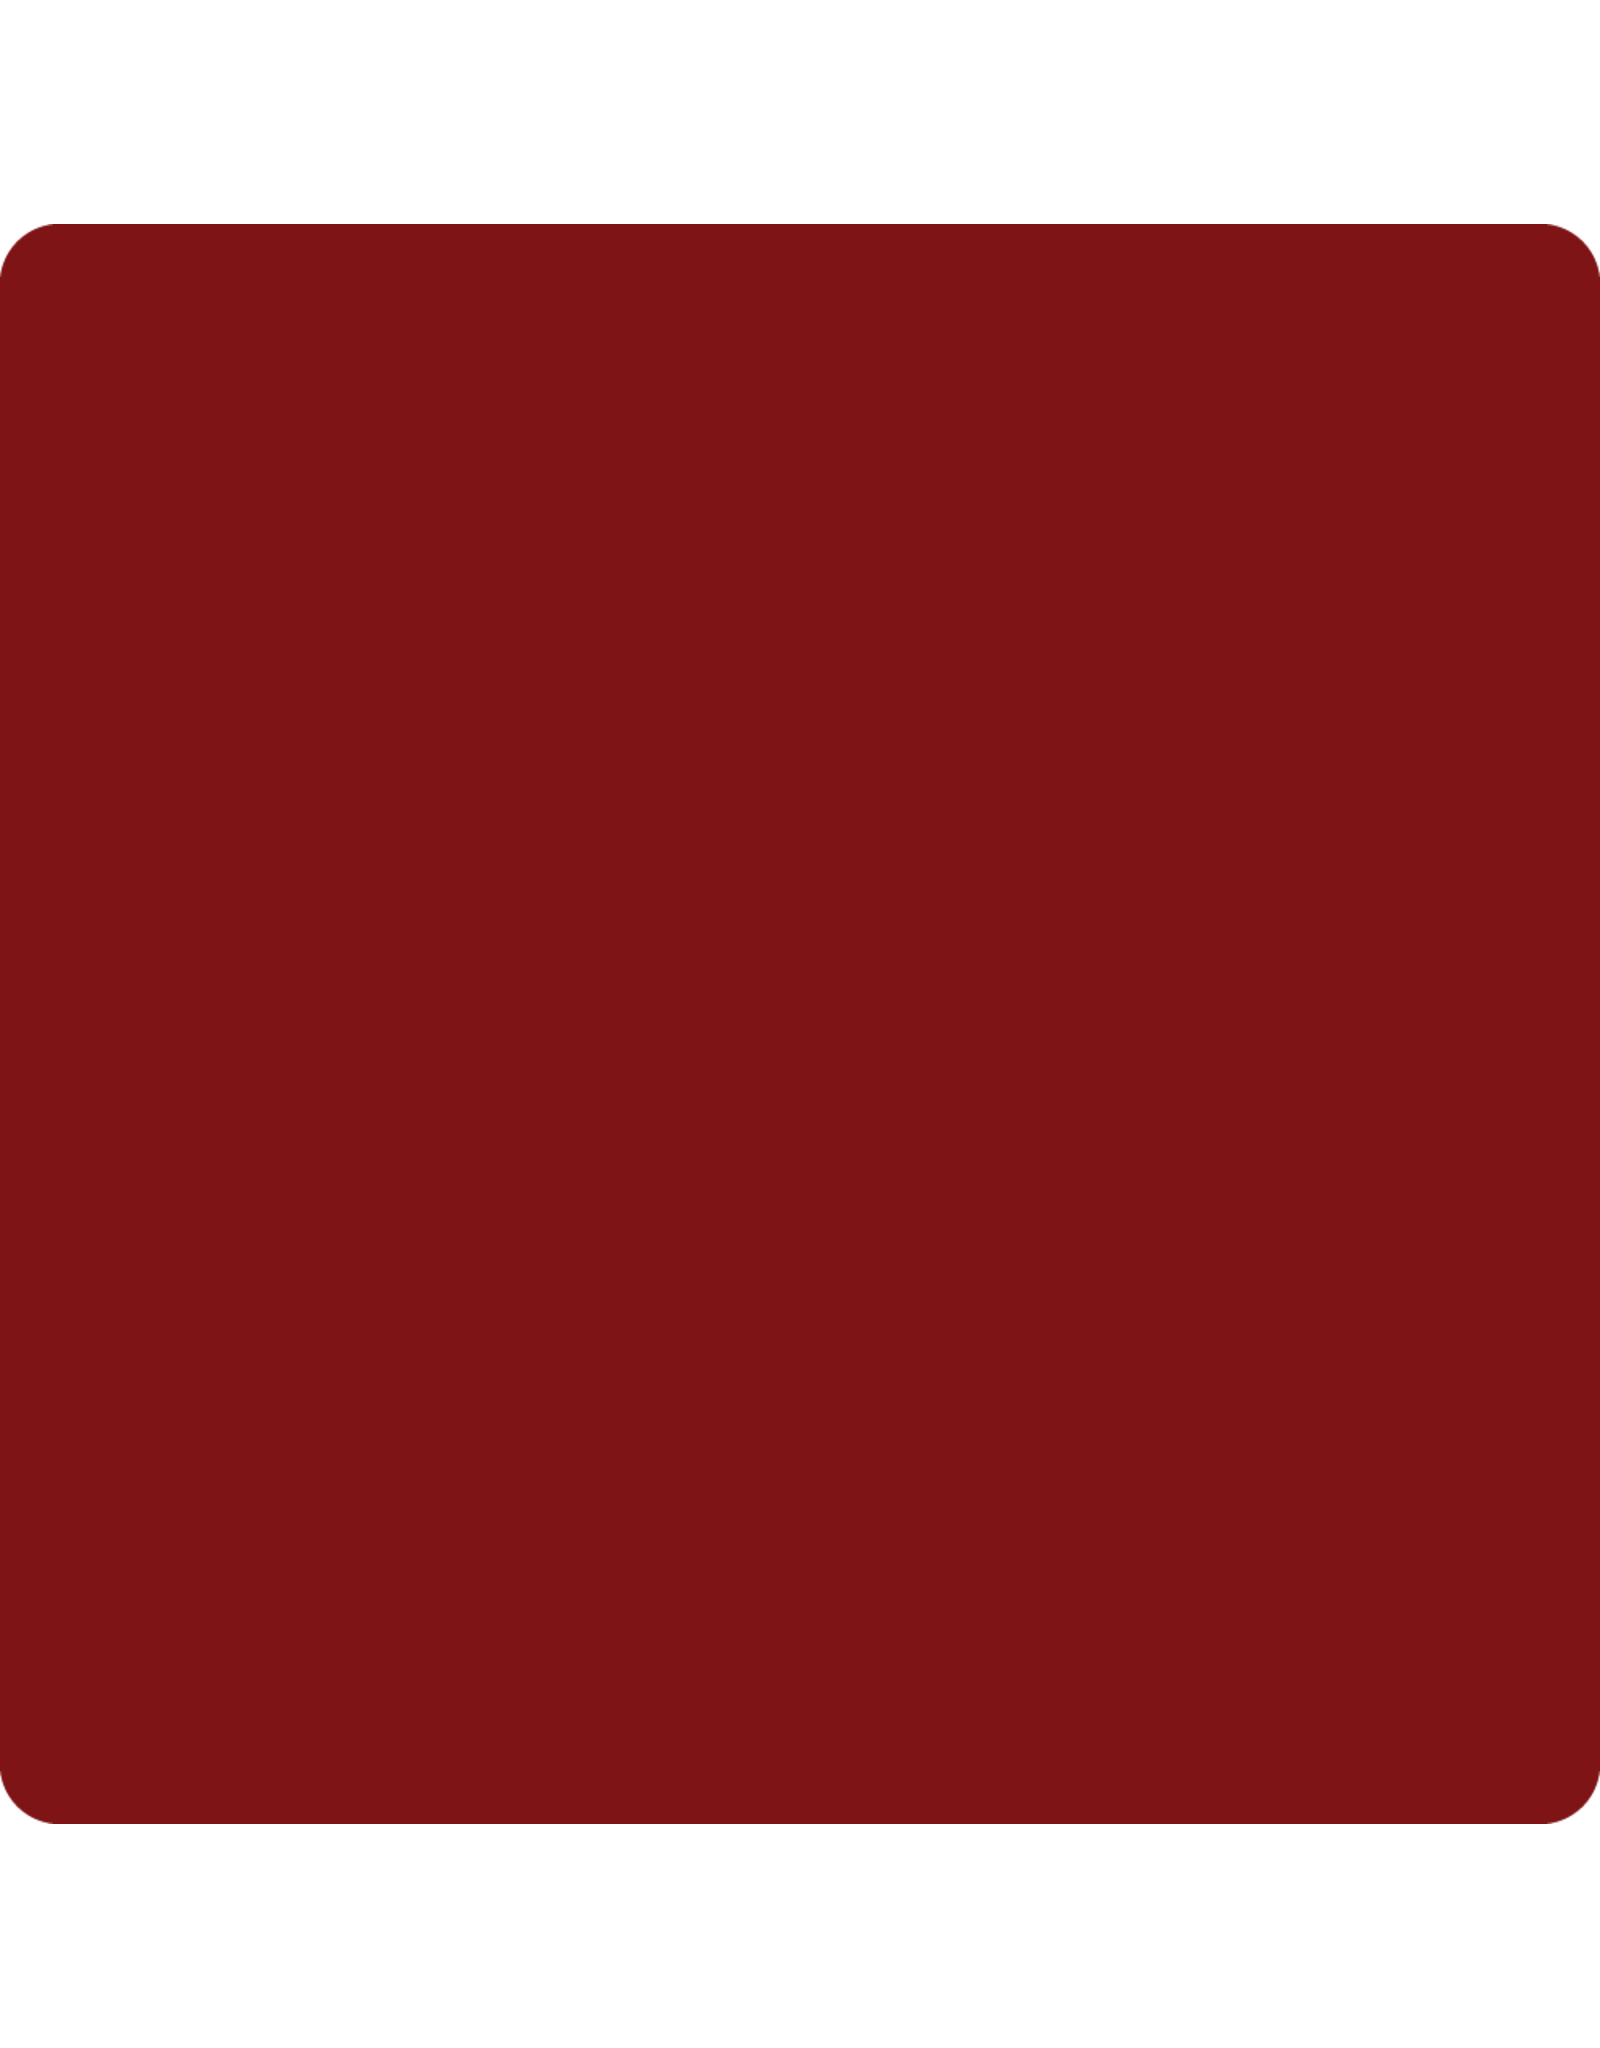 Wise Owl Paint Chalk Synthesis Paint Republic Red-Pint